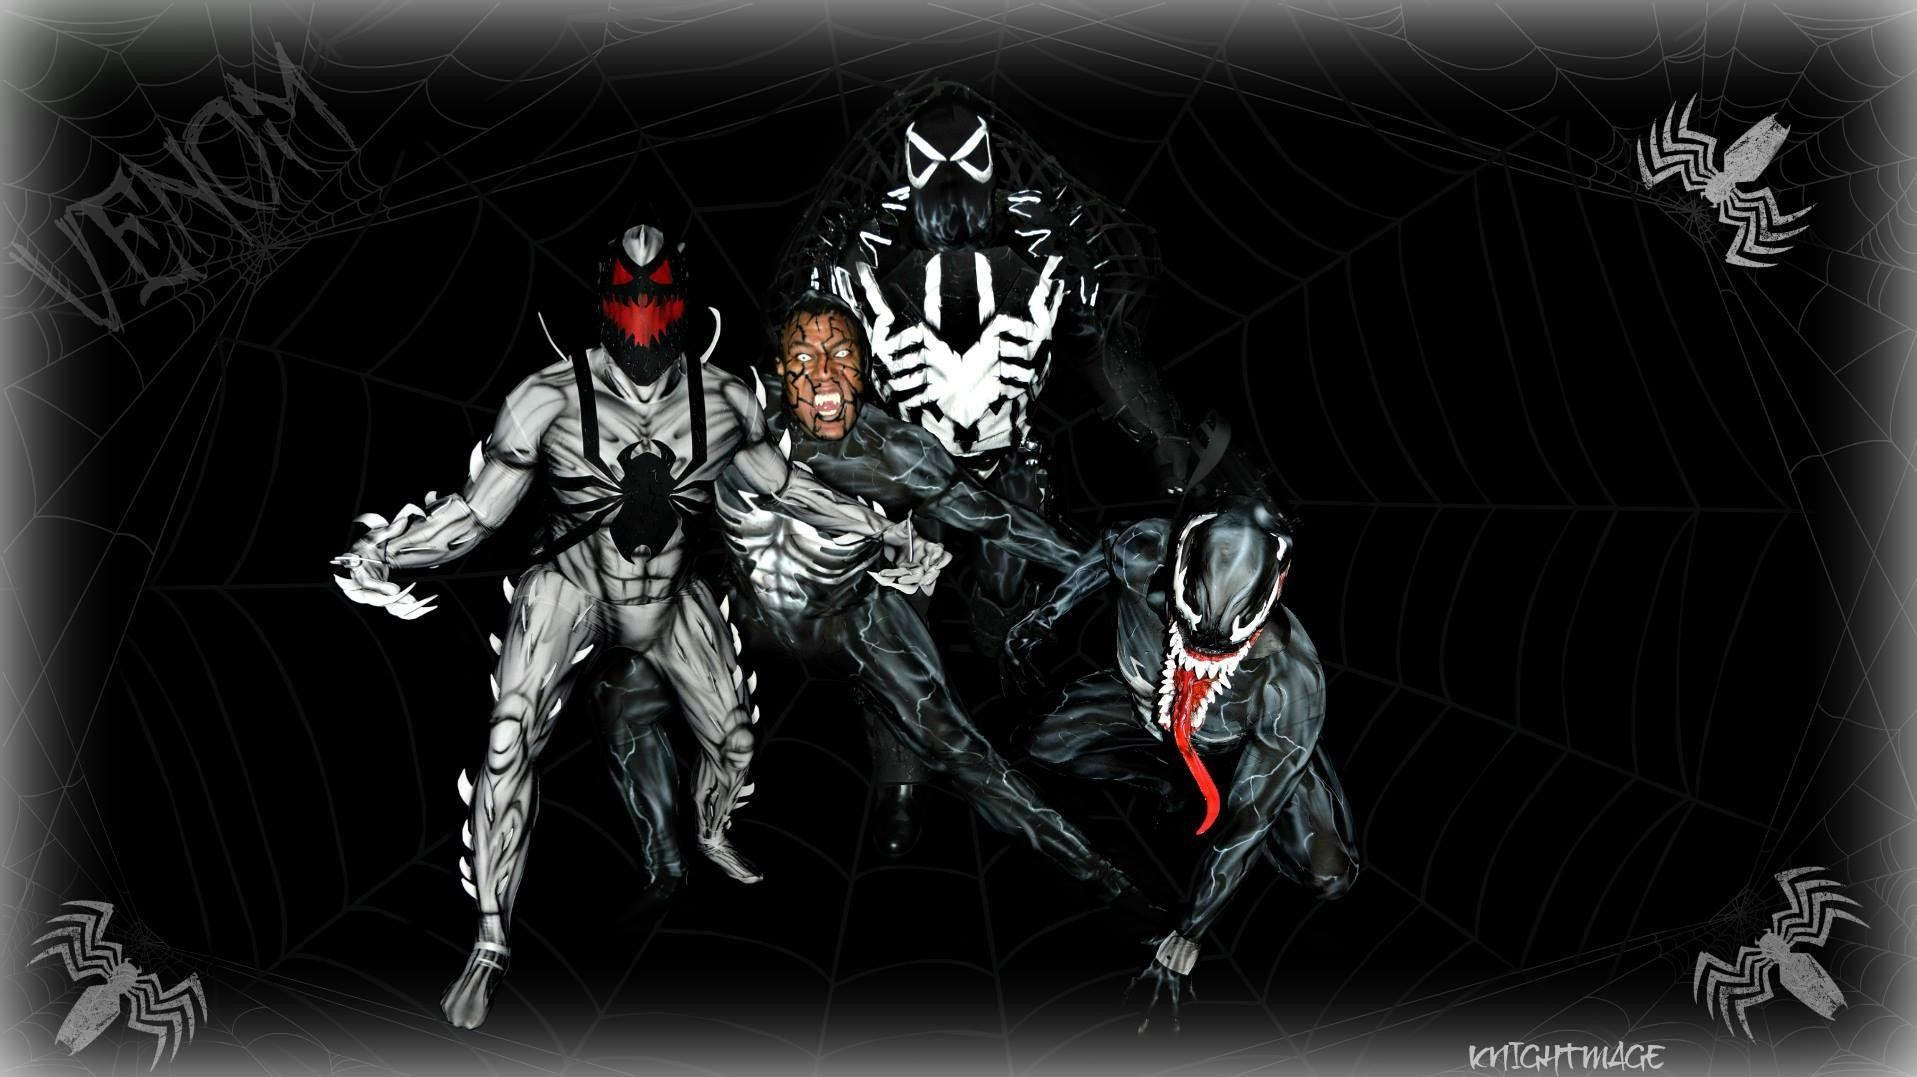 Venom Mixed Cosplay Interview With Knightmage!